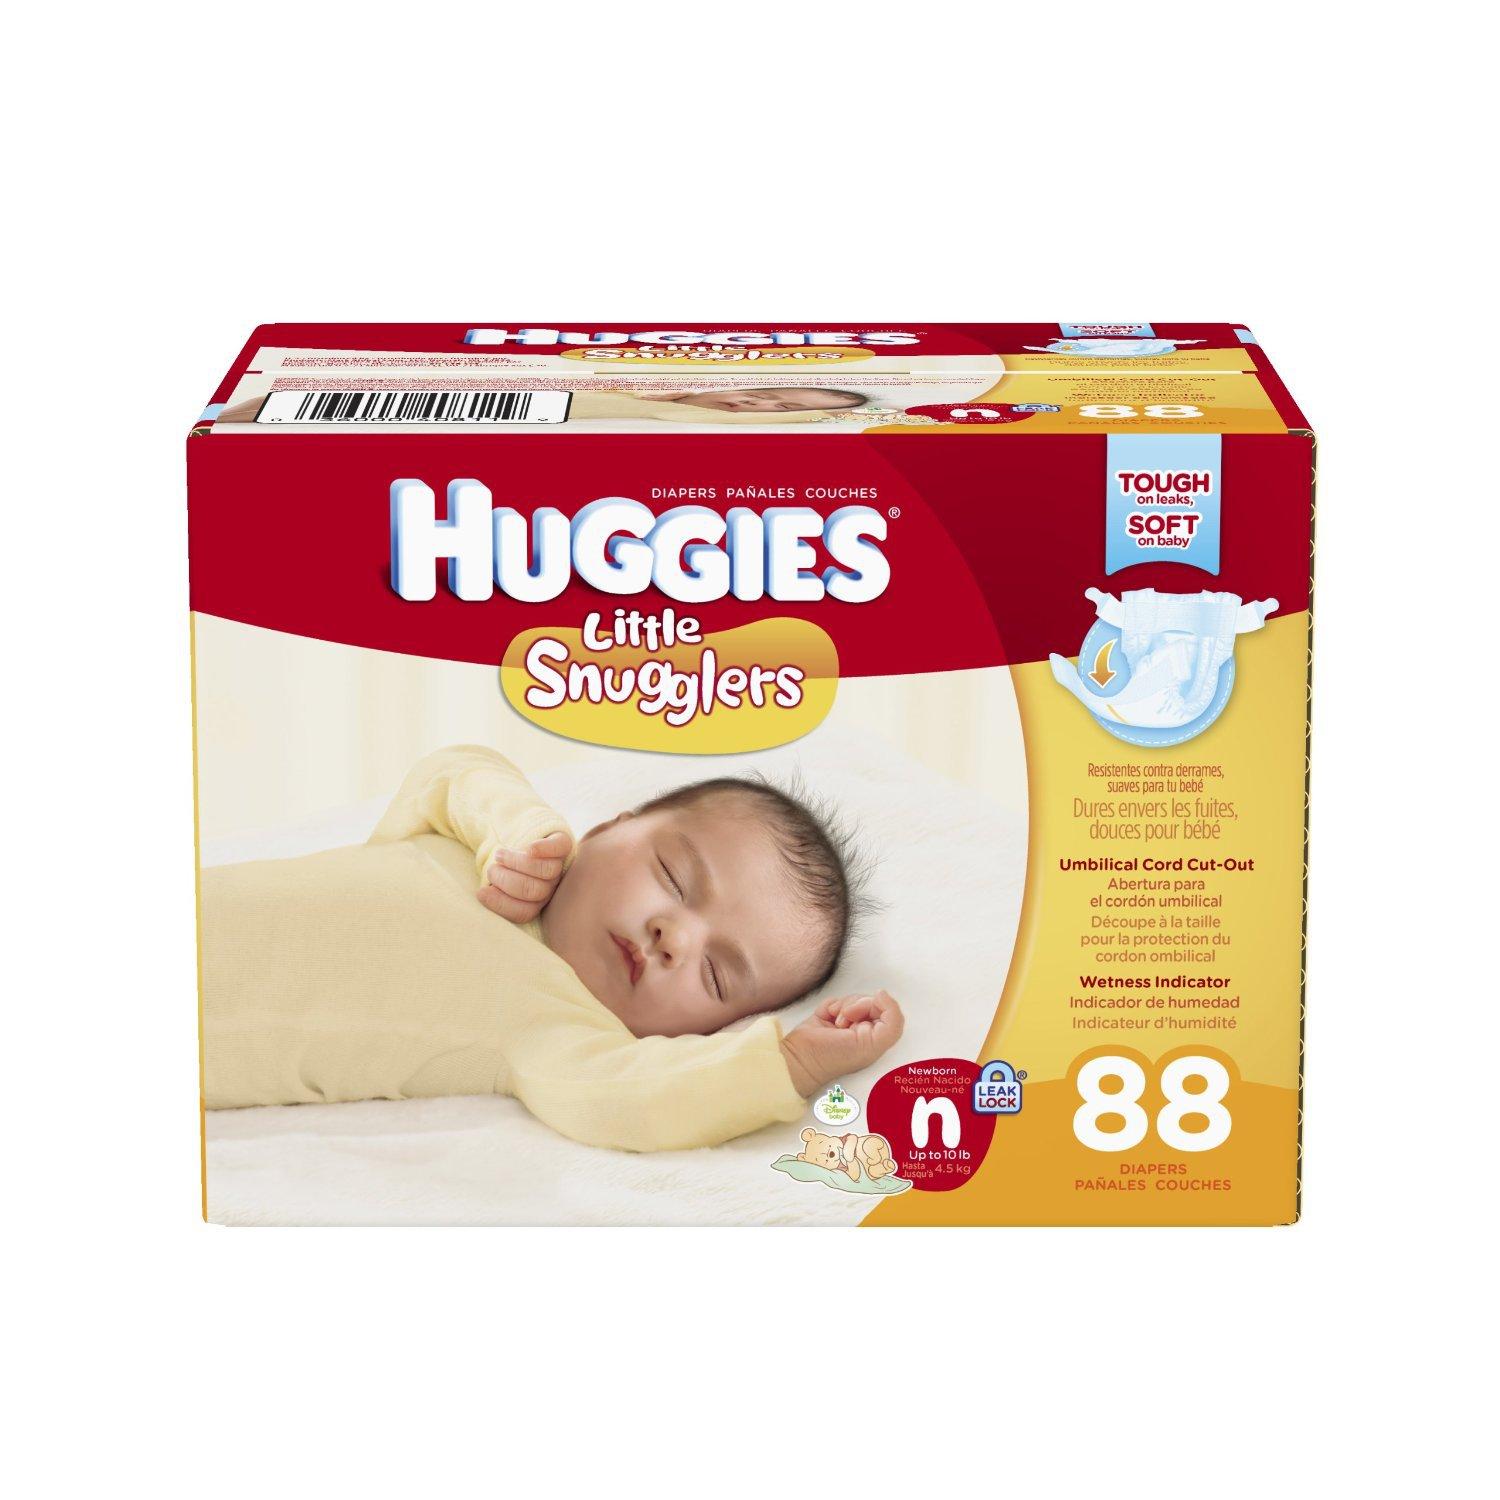 AdSearch several engines for Cheapest Newborn DiapersCheapest Newborn Diapers - Excite Web Search.